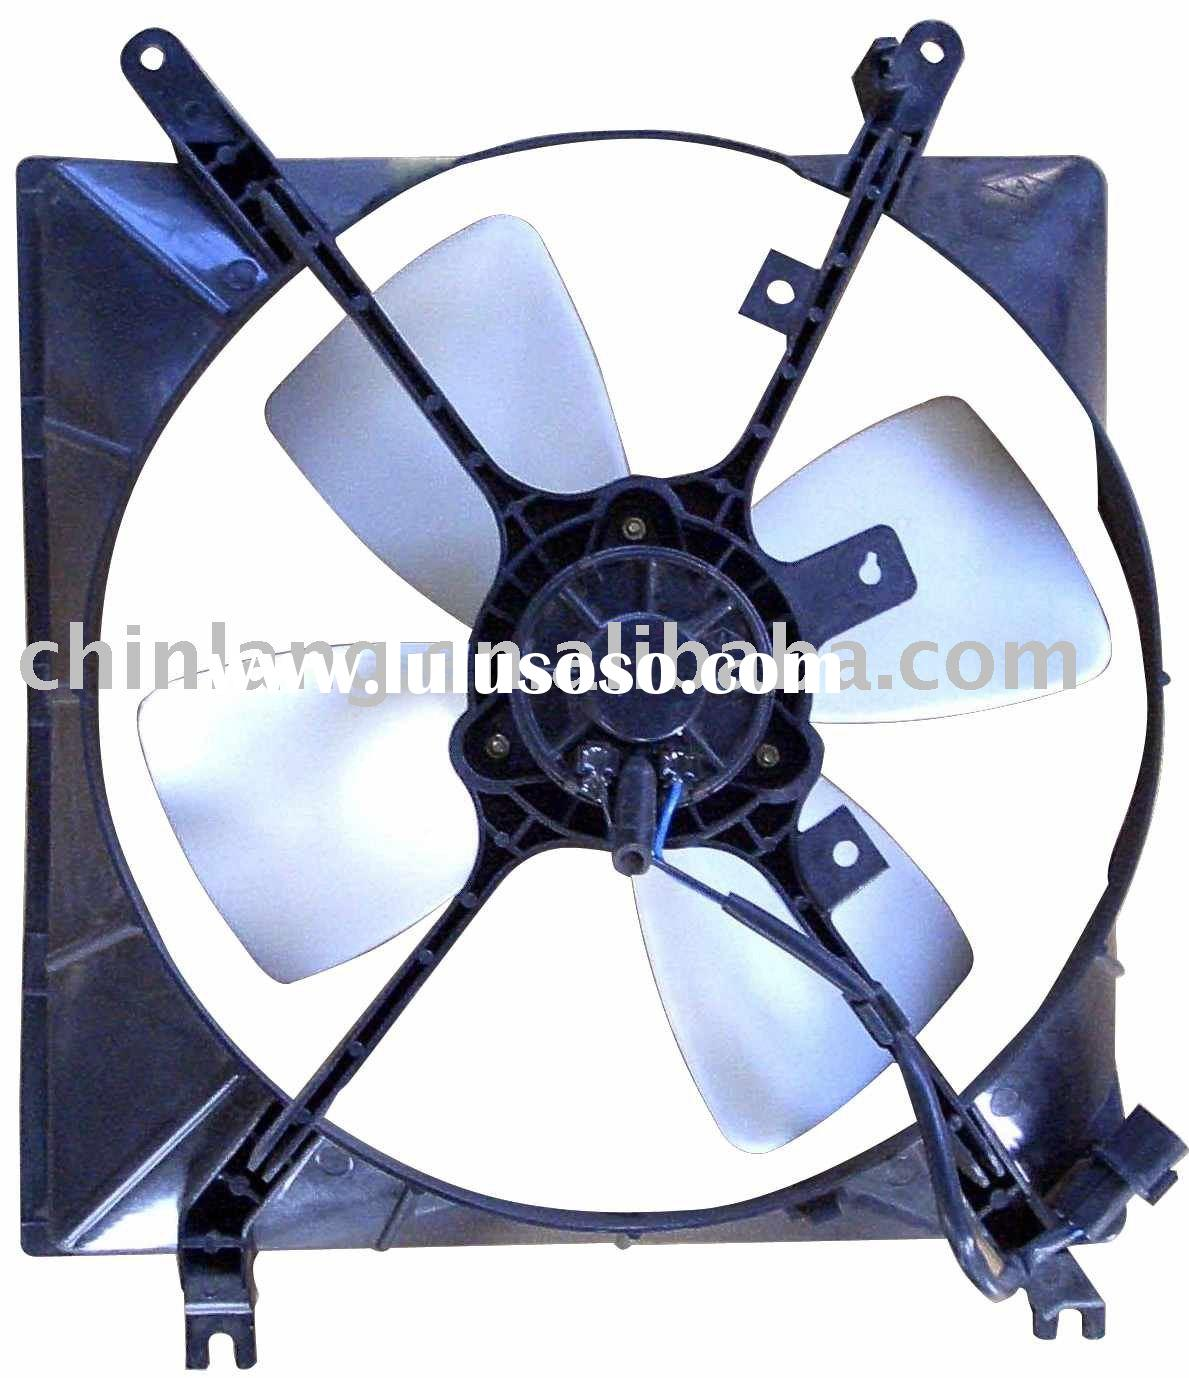 Radiator Fan/Auto Cooling Fan/Condenser Fan/Fan Motor For MITSUBISHI LANCER 92'~96',